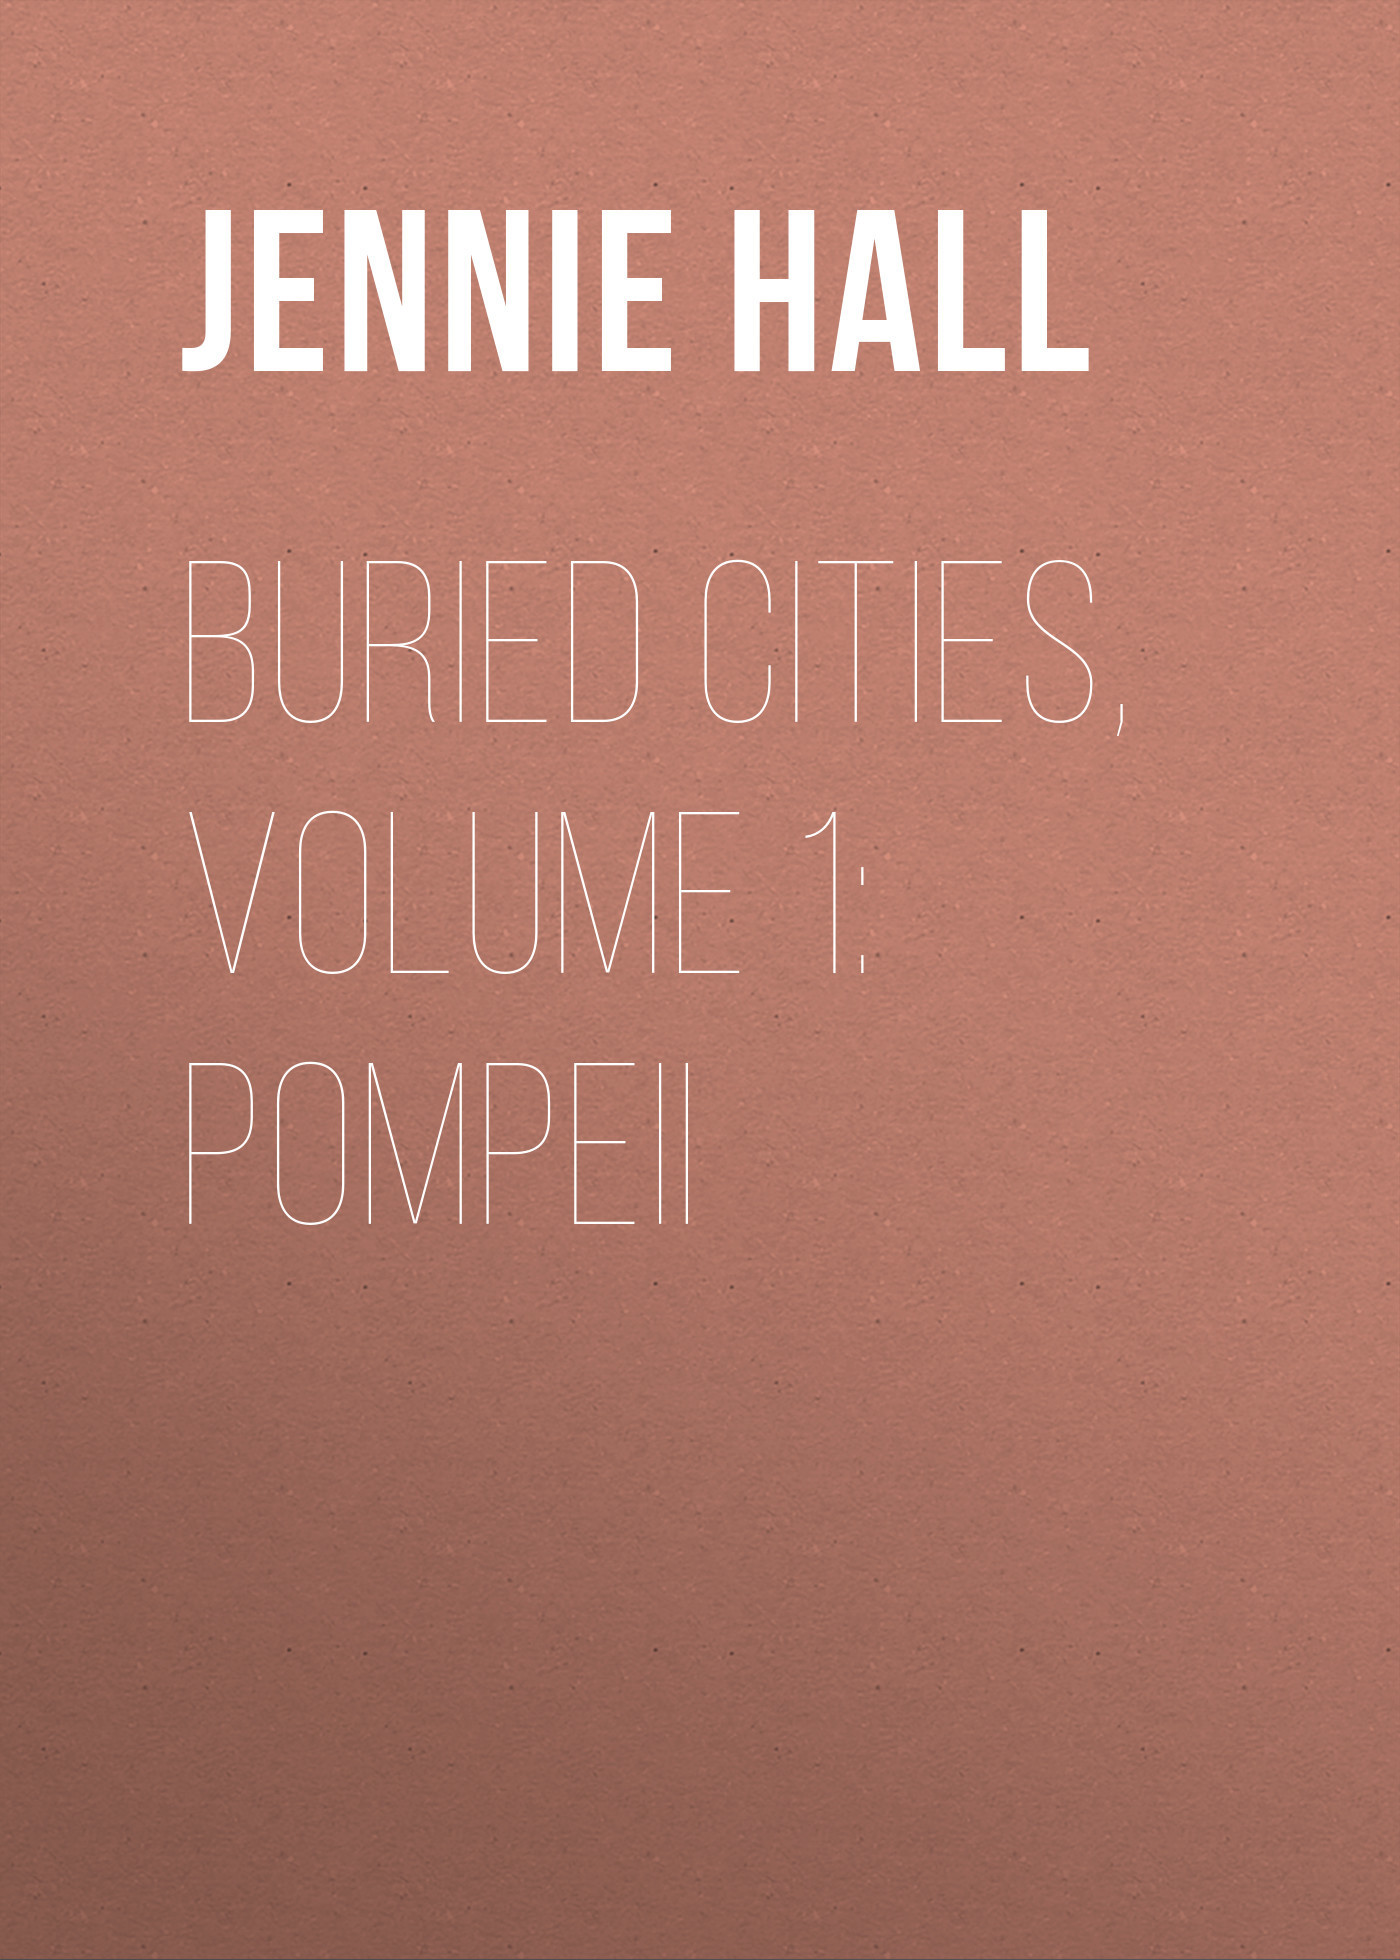 Jennie Hall Buried Cities, Volume 1: Pompeii футболка cities skylines written cities charcoal серая s